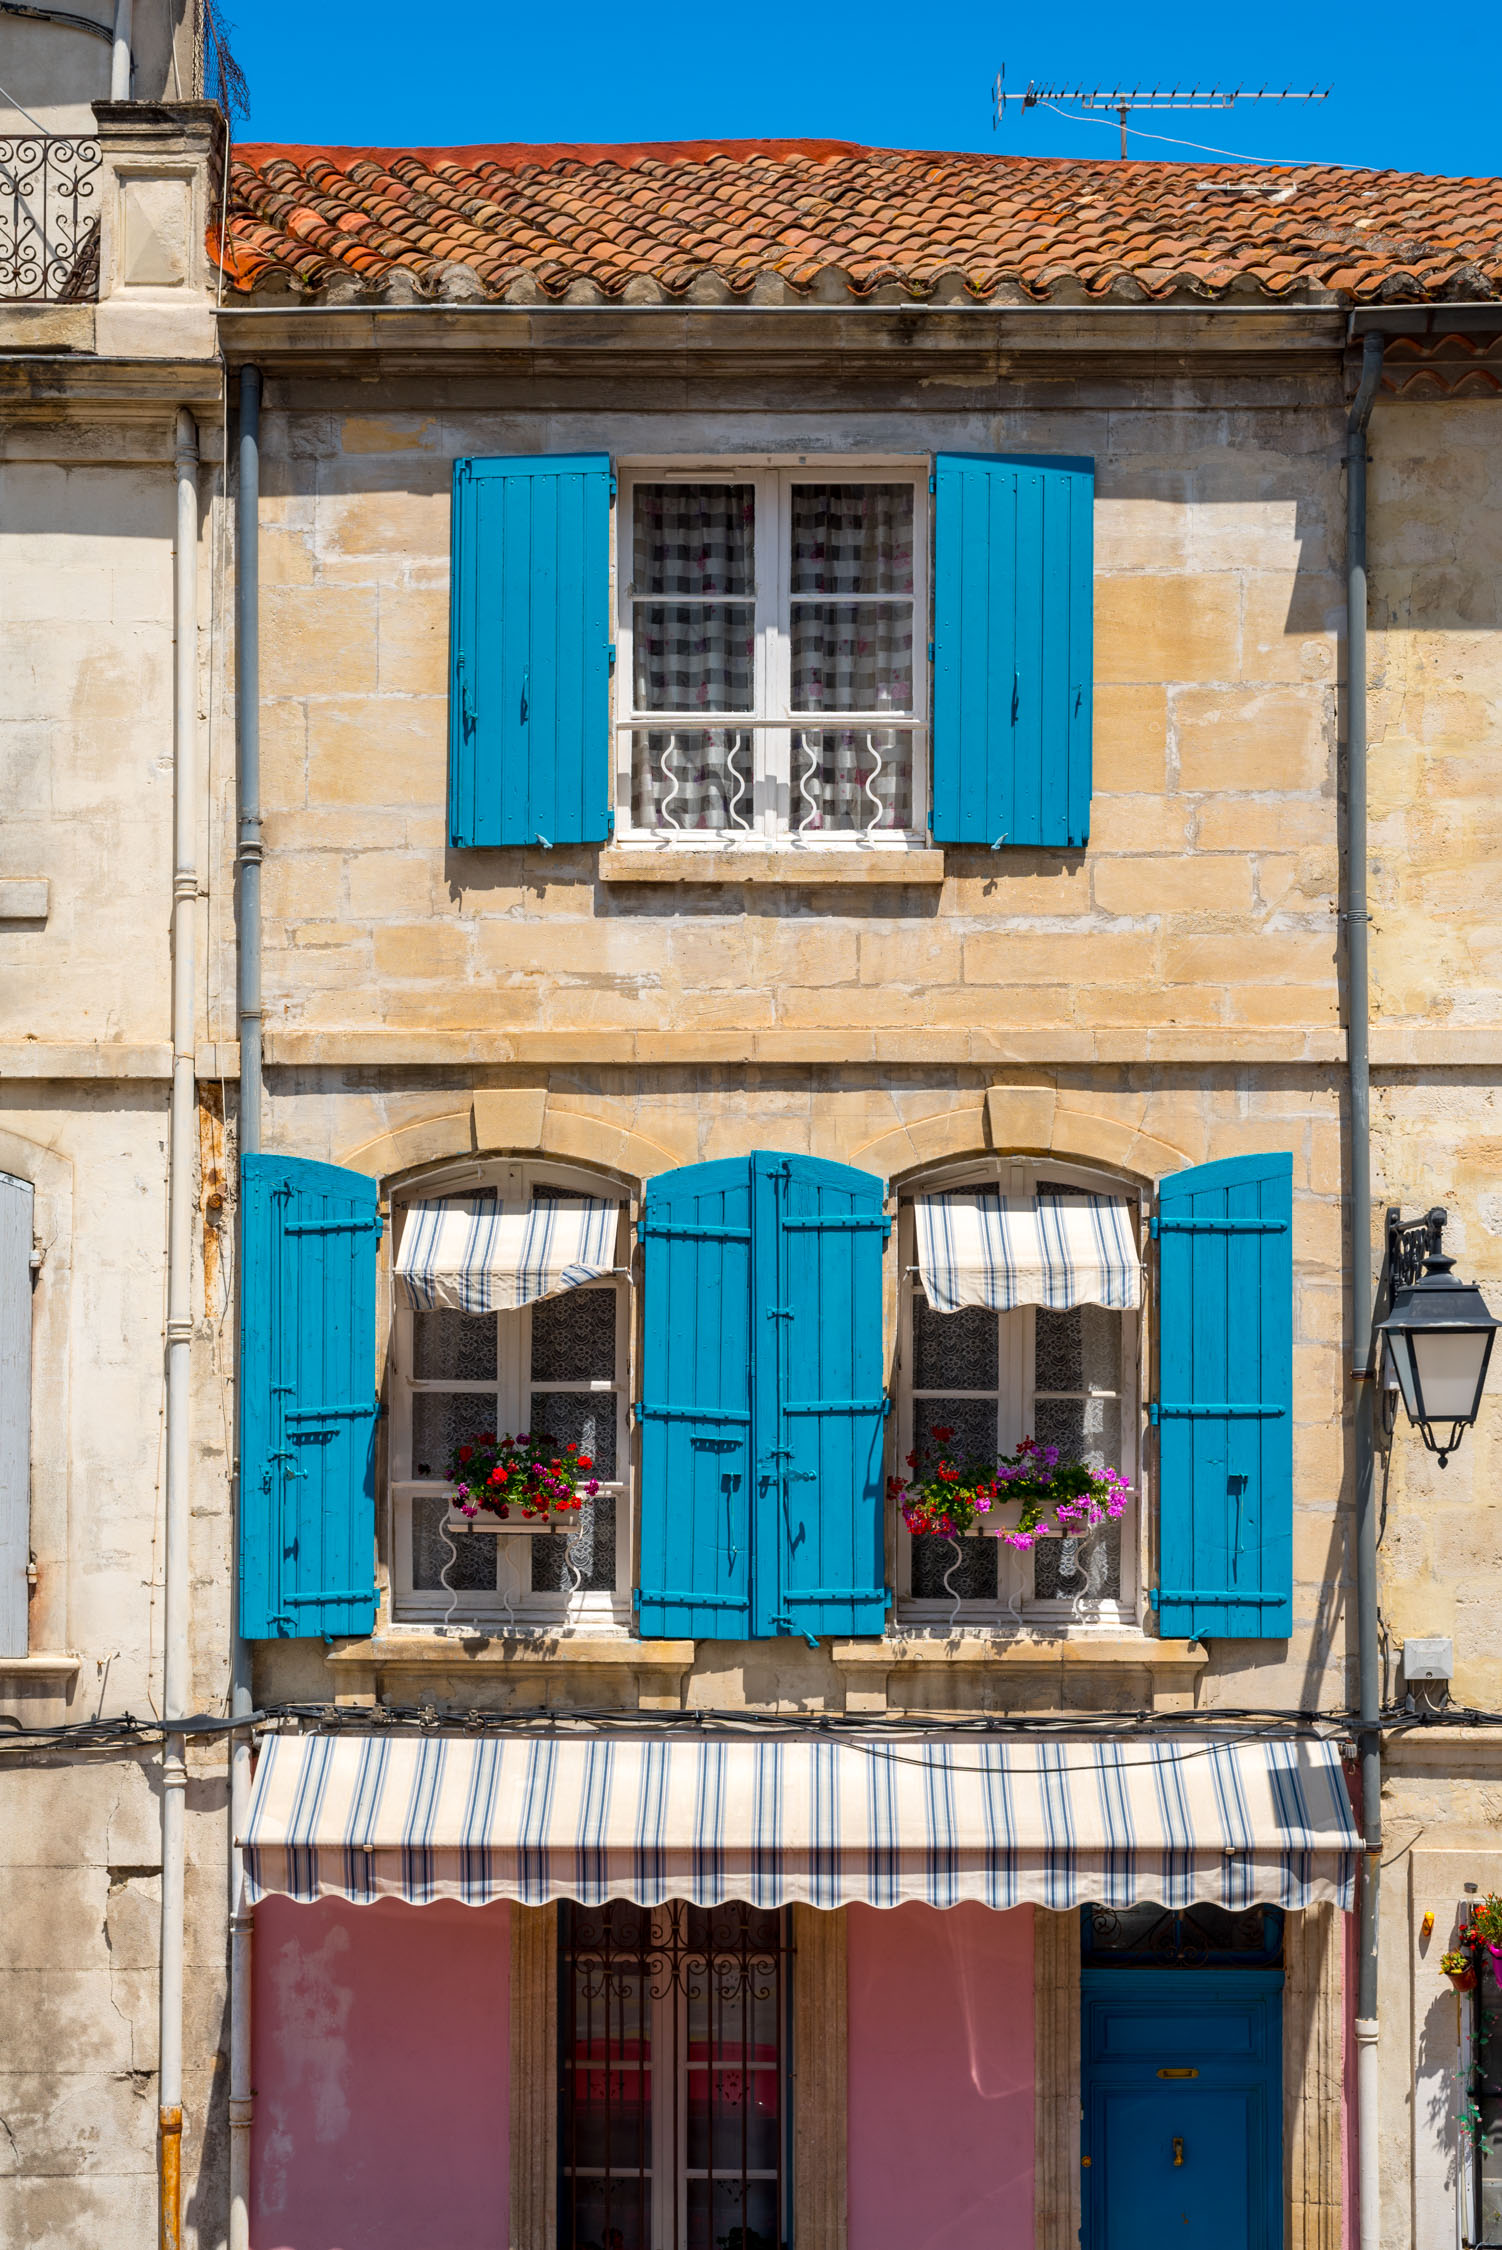 Arles is picture perfect